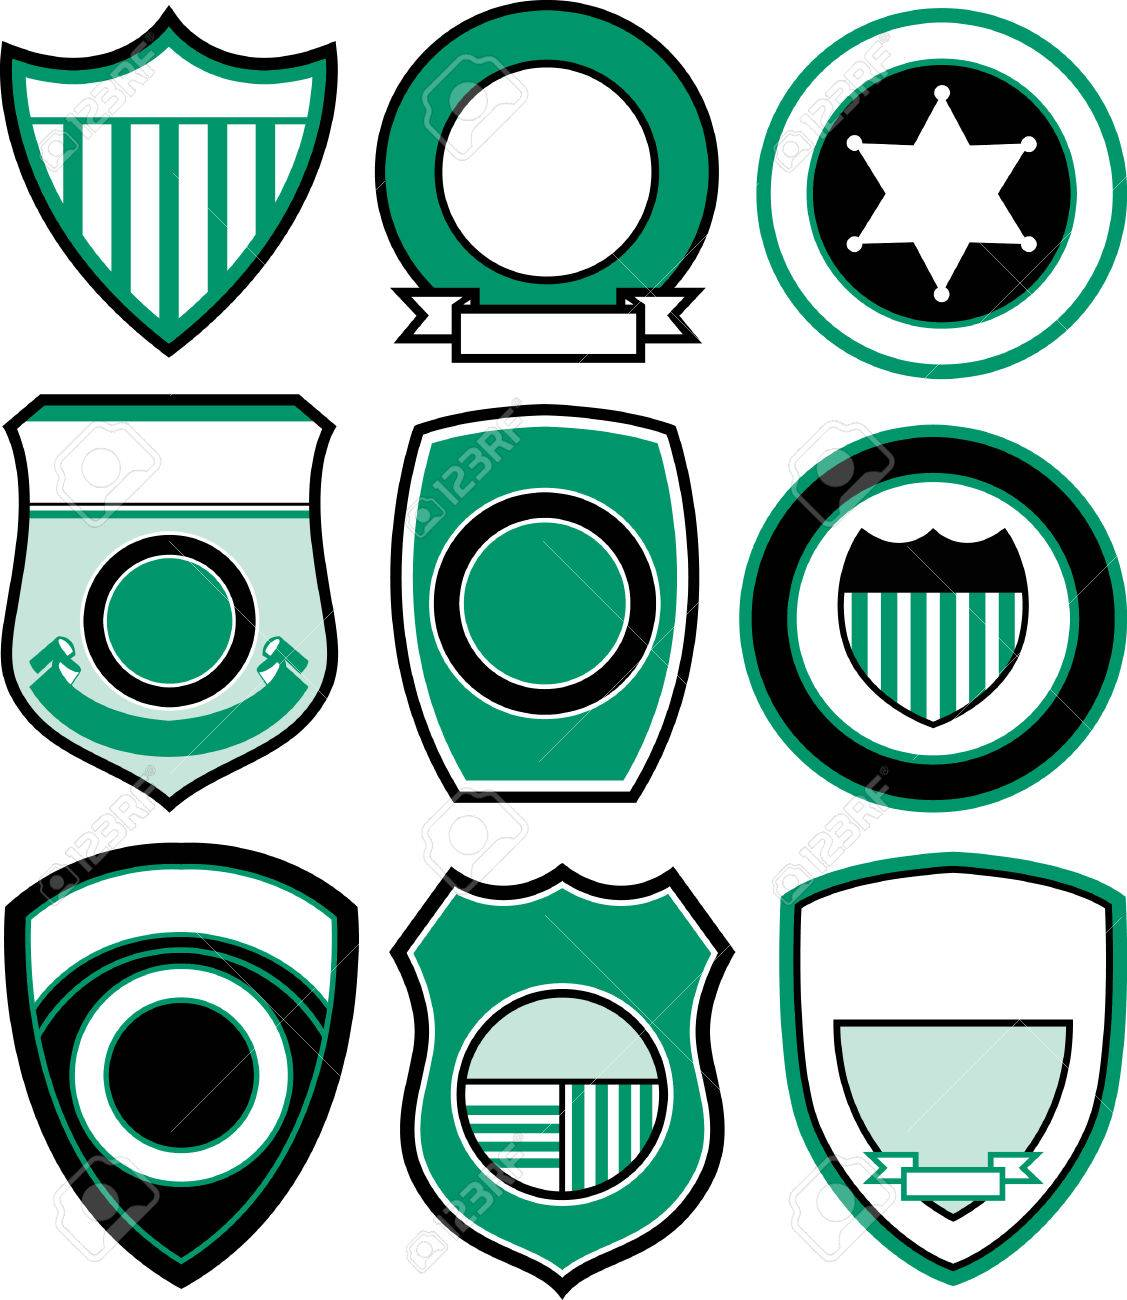 emblem badge shield design royalty free cliparts vectors and